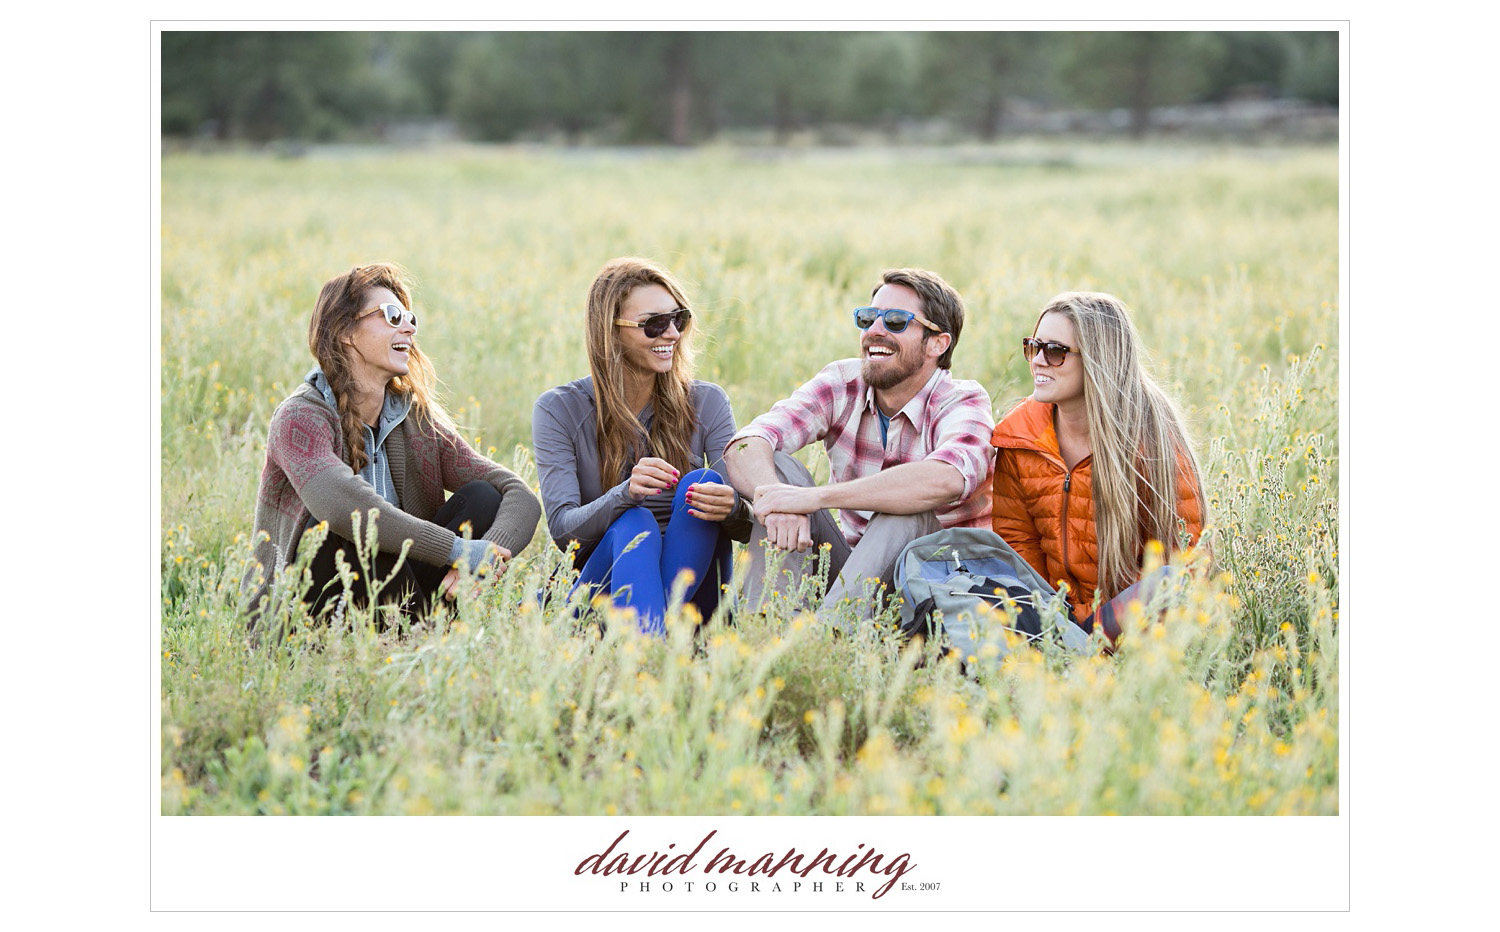 SOLO-Eyewear--Commercial-Editorial-Photos-David-Manning-Photographers-0038.jpg